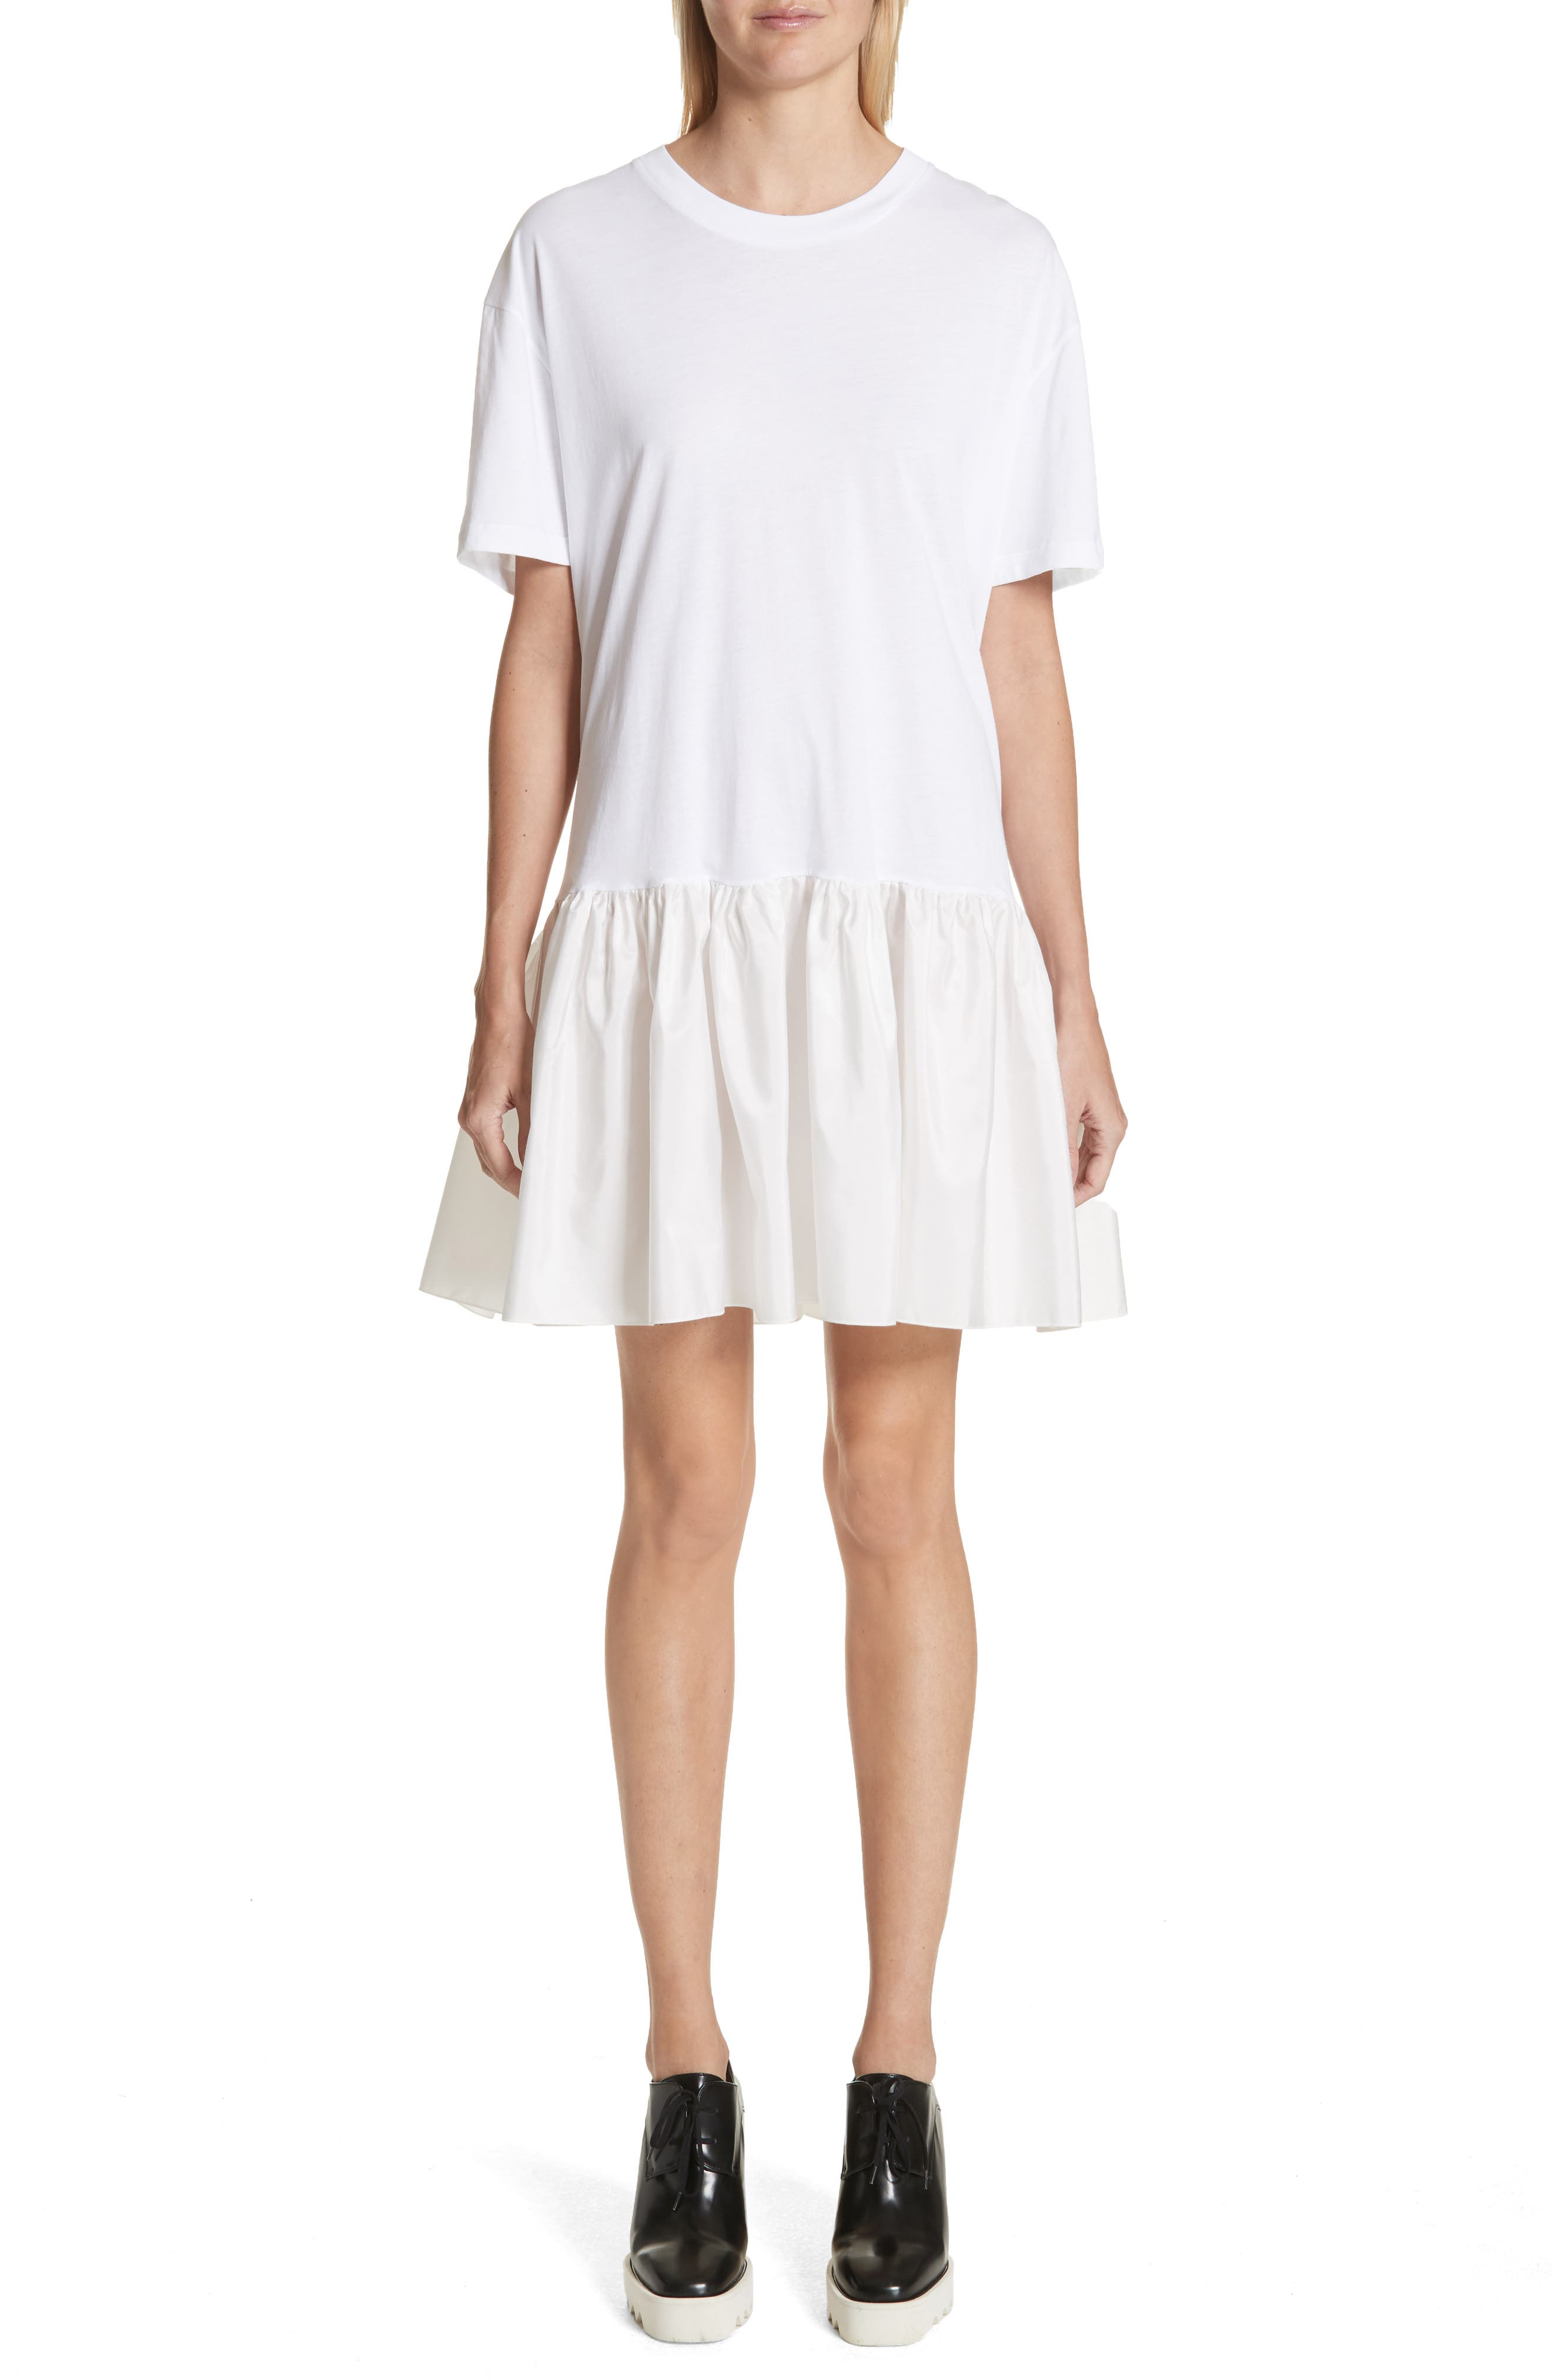 Stella McCartney Drop Waist Taffeta Hem T-Shirt Dress